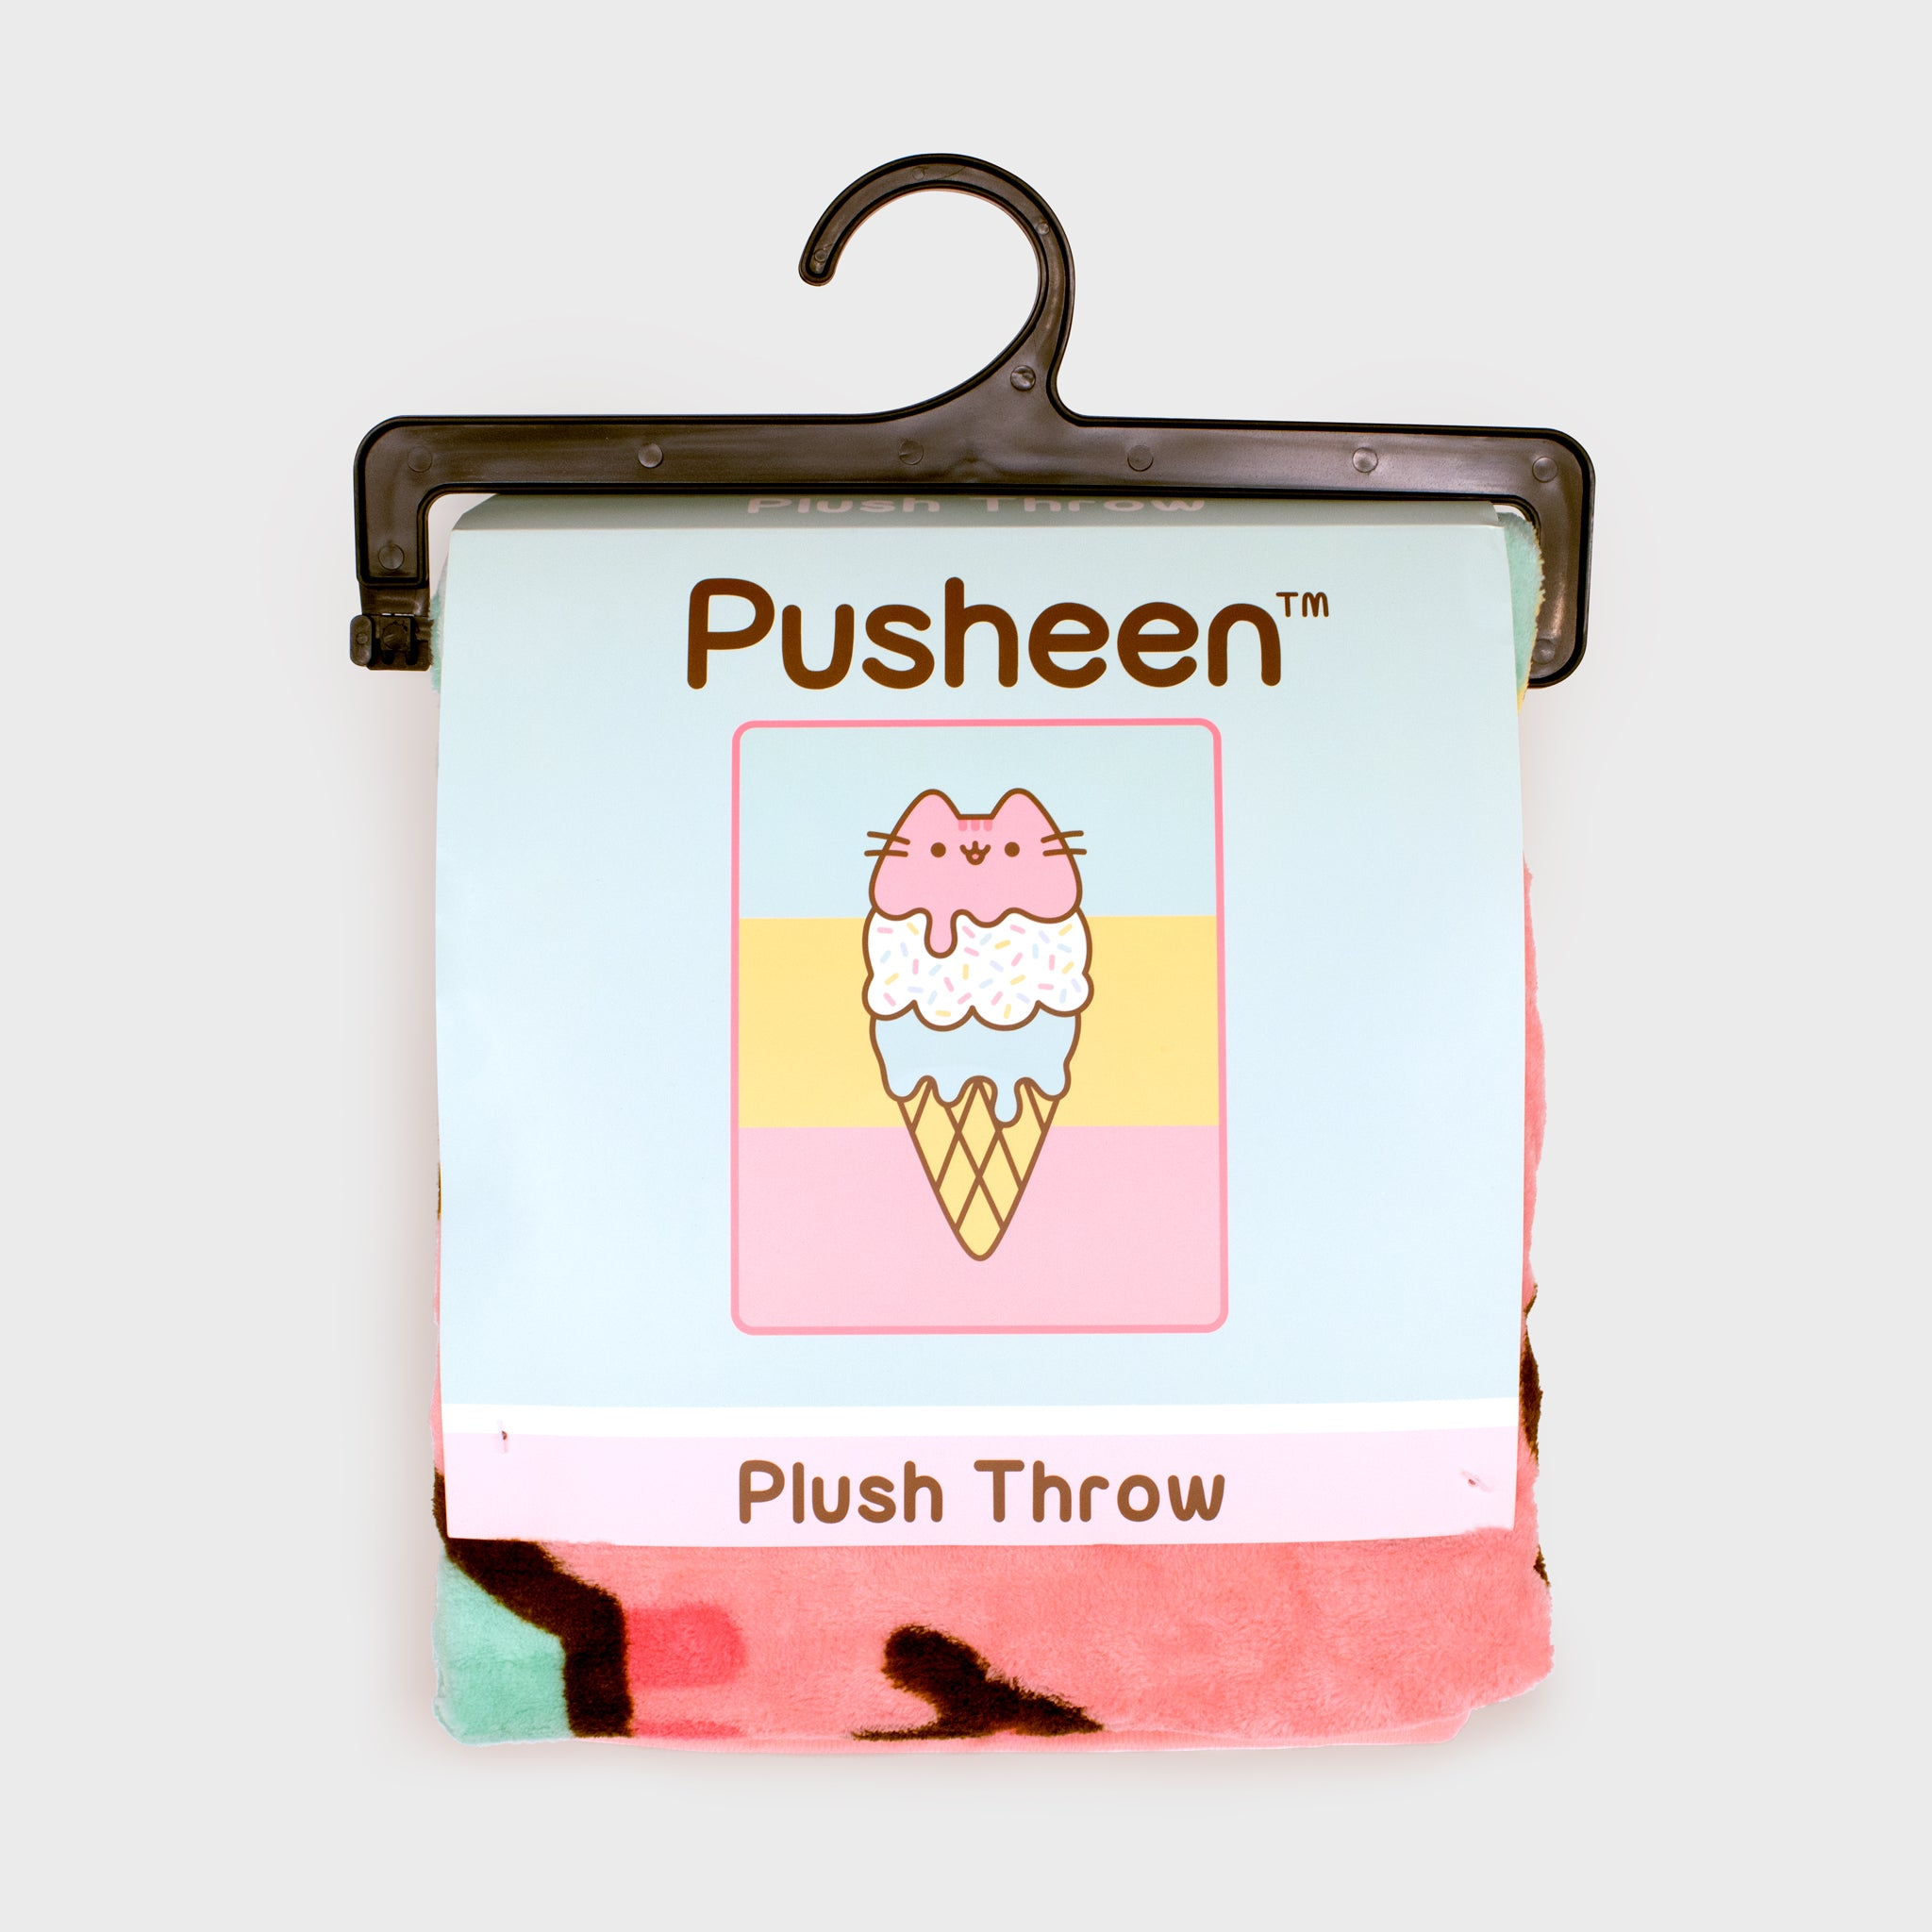 pusheen throw blanket accessory collectible home good ice cream culturefly